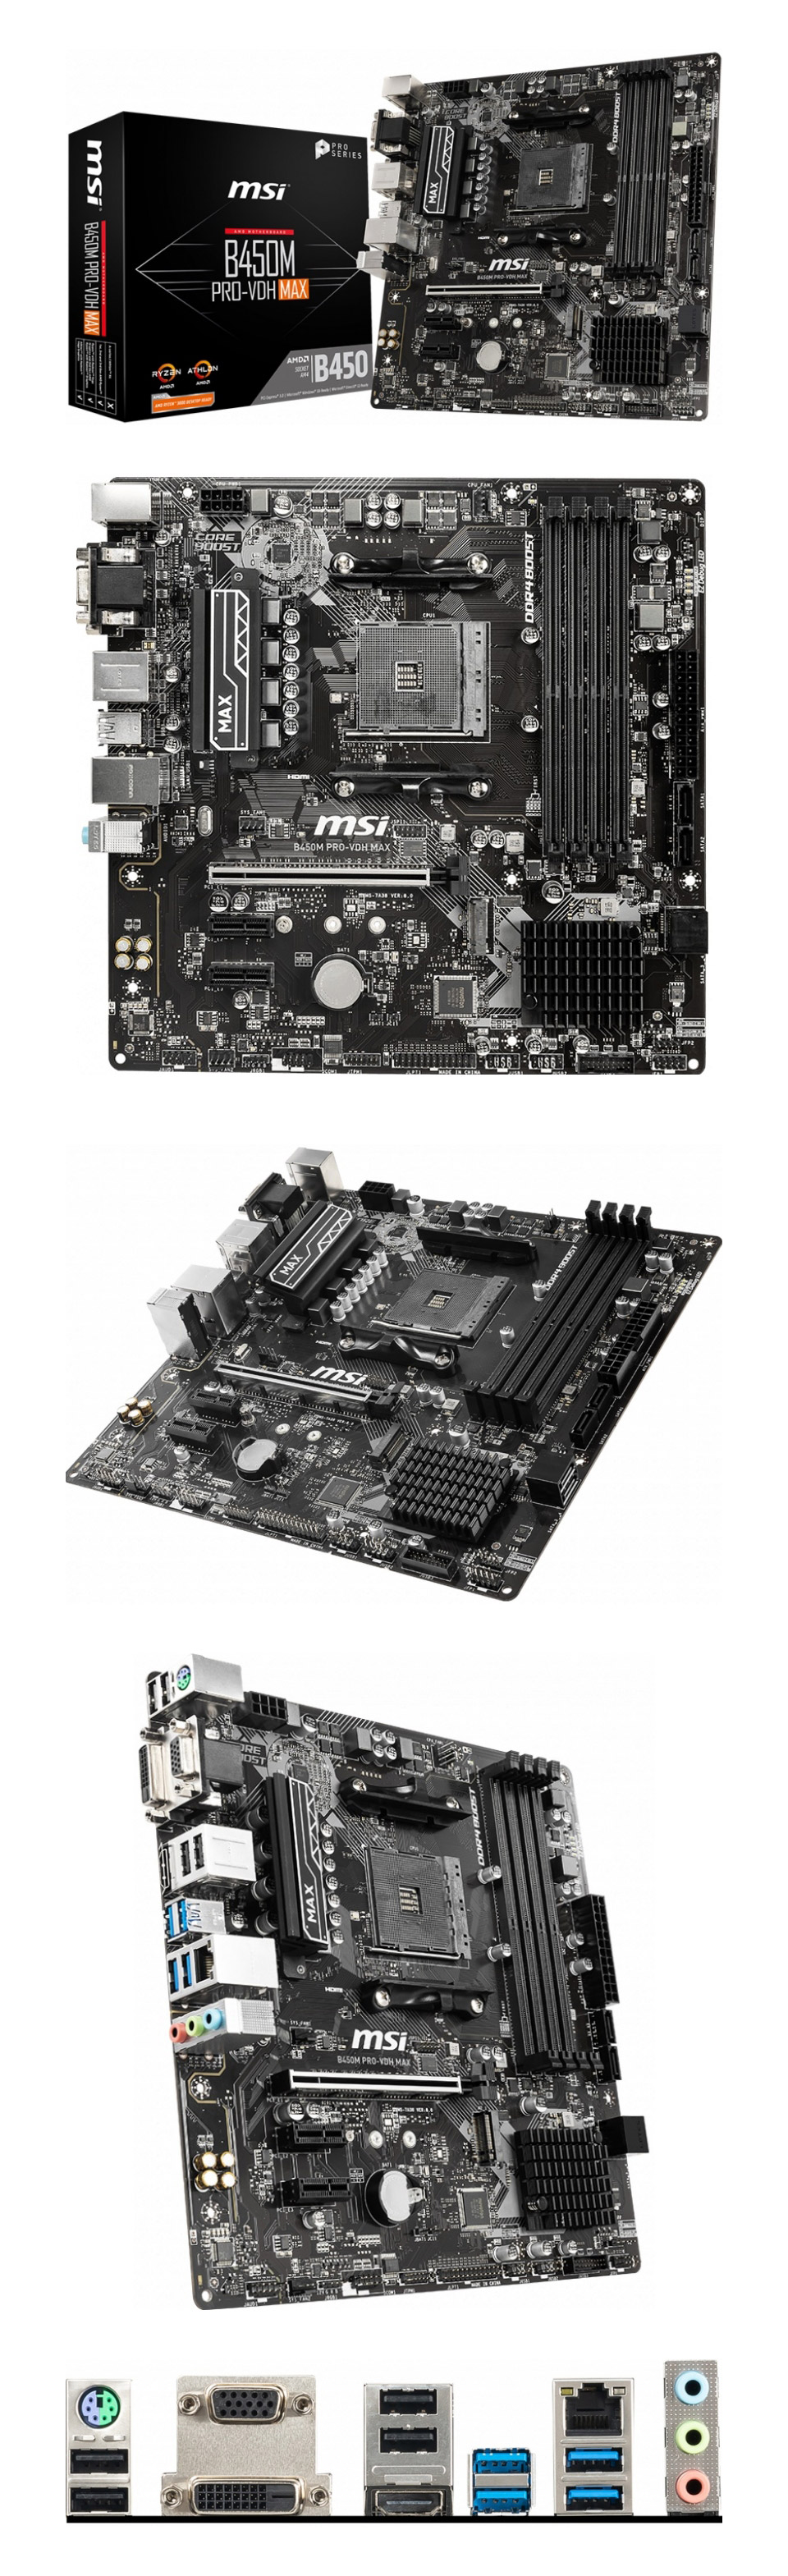 MSI B450M Pro-VDH Max Motherboard product